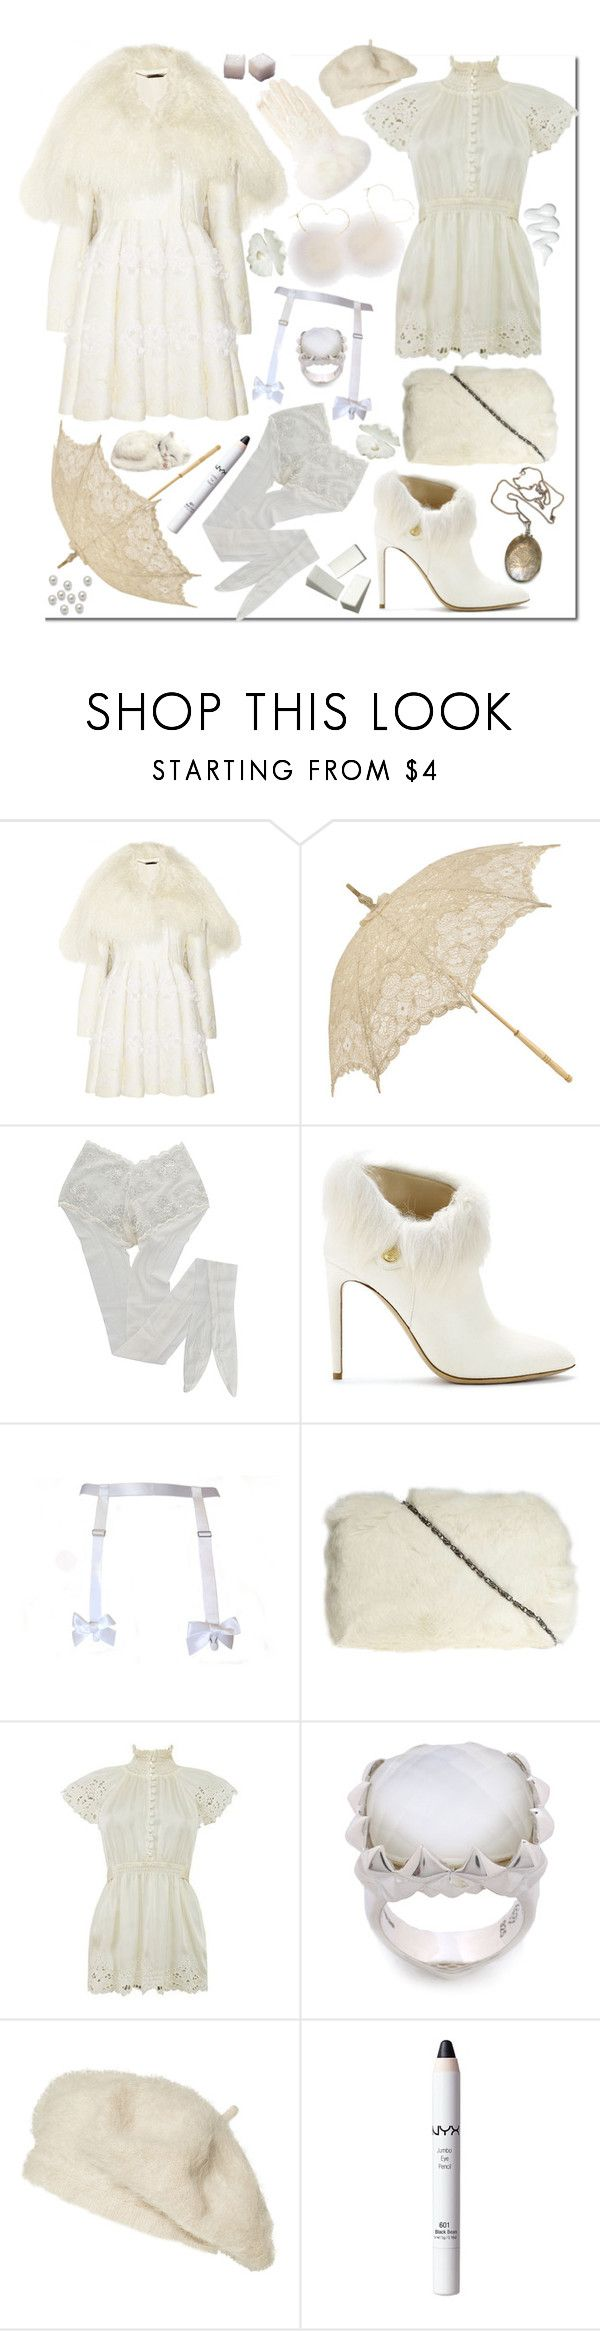 """""""usagi"""" by ju-on ❤ liked on Polyvore featuring Alexander McQueen, HYD, Ralph Lauren, Dorothy Perkins, Vintage Collection, Stephen Webster, Zara, NYX, white and fur"""